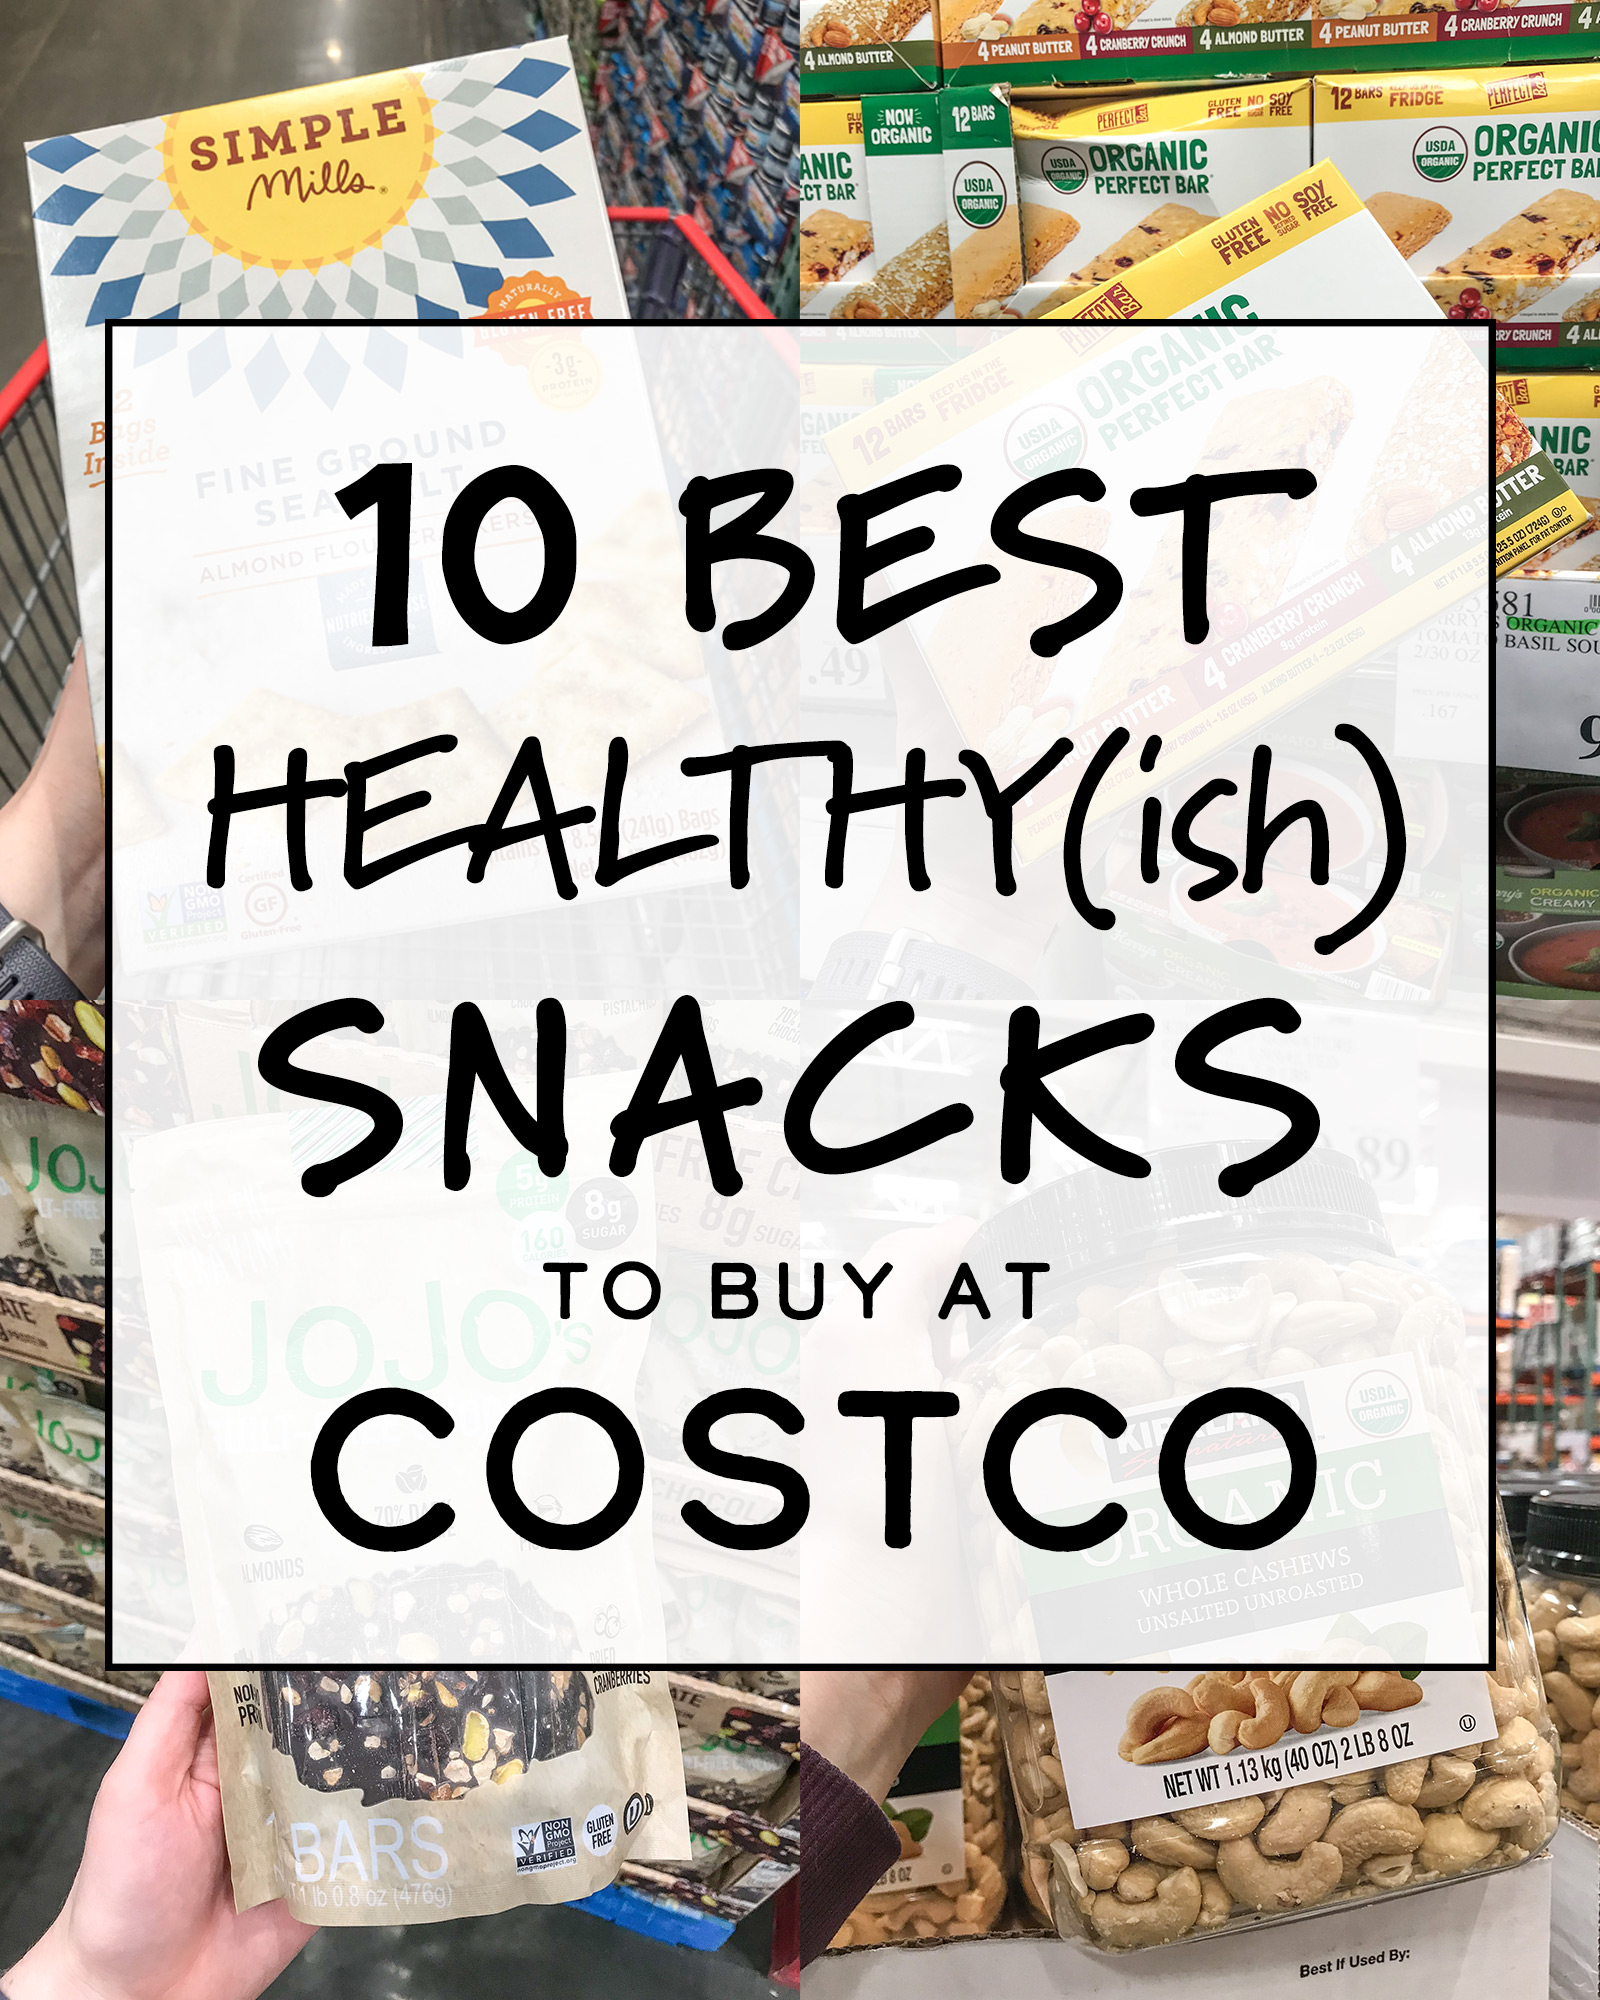 Cover image for the article 10 Best Healthy(ish) Snacks to Buy at Costco